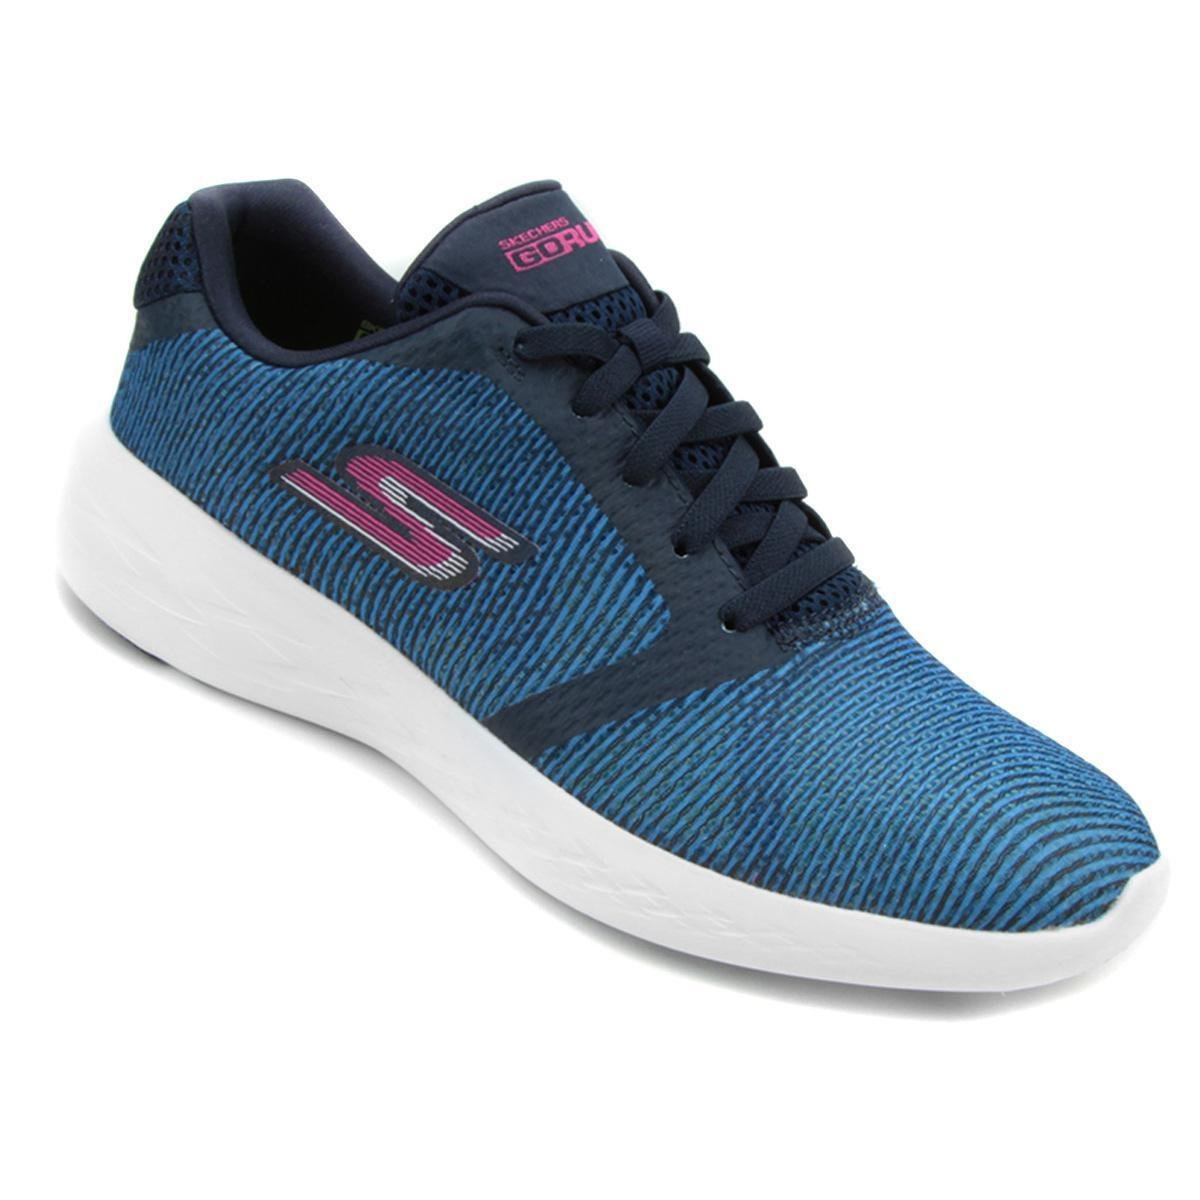 sketchers - Netshoes - Tênis Skechers Go Run 600 - R$ 129,99